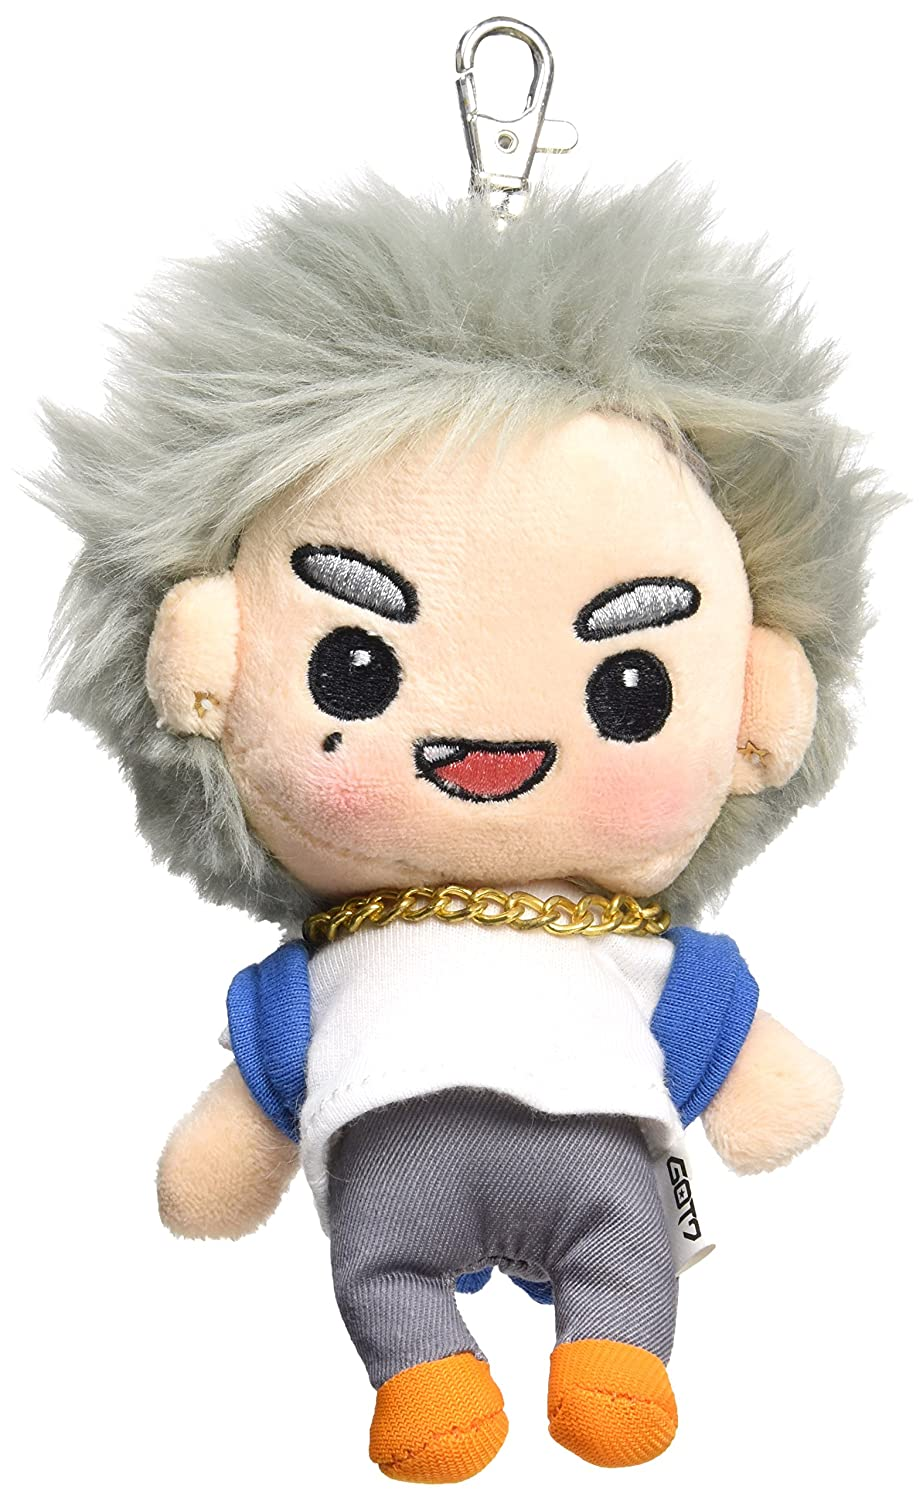 - GOT7 Dream Knight Goods - GOT7 Character Doll (Yugyeom)  - Amazon.com Music